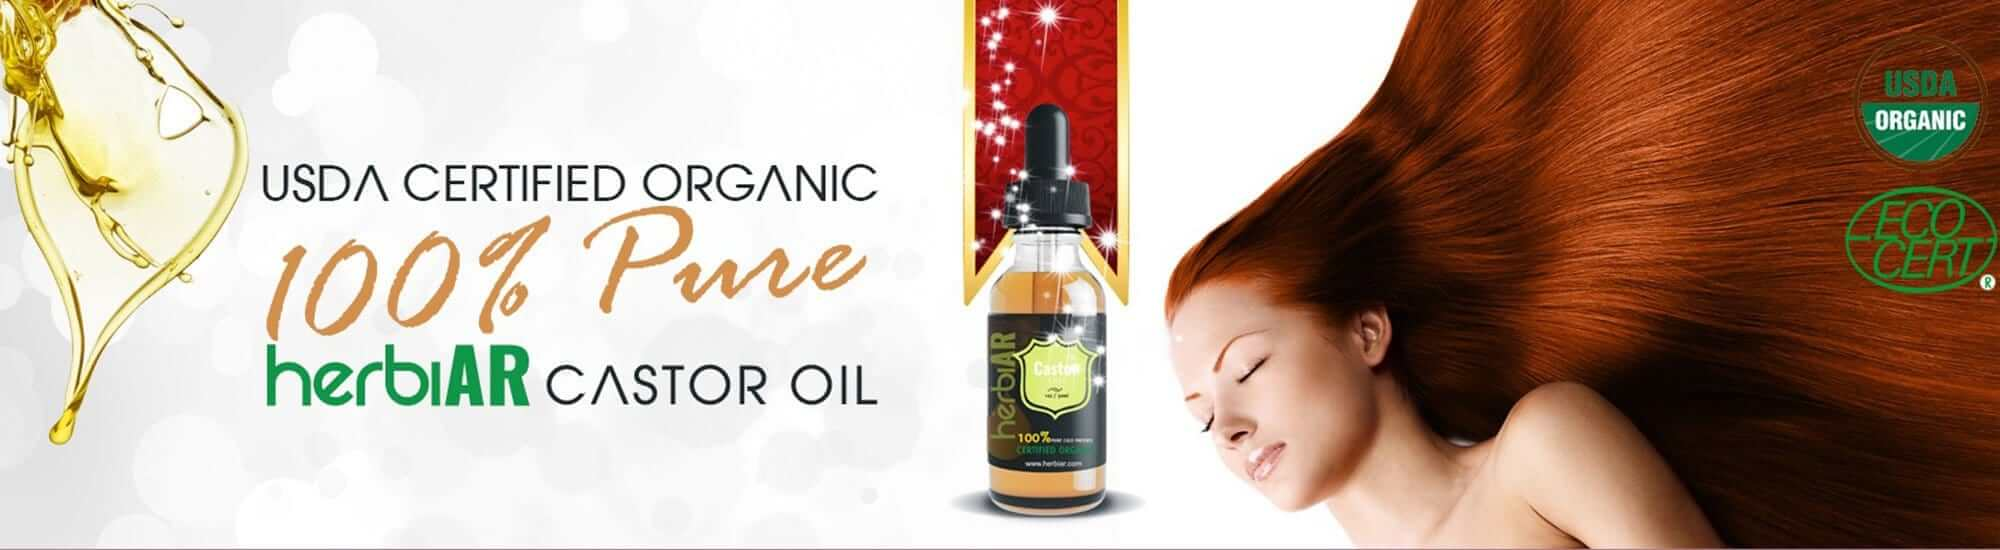 usda certified organic 100% pure hexane-free castor oil for hair growth